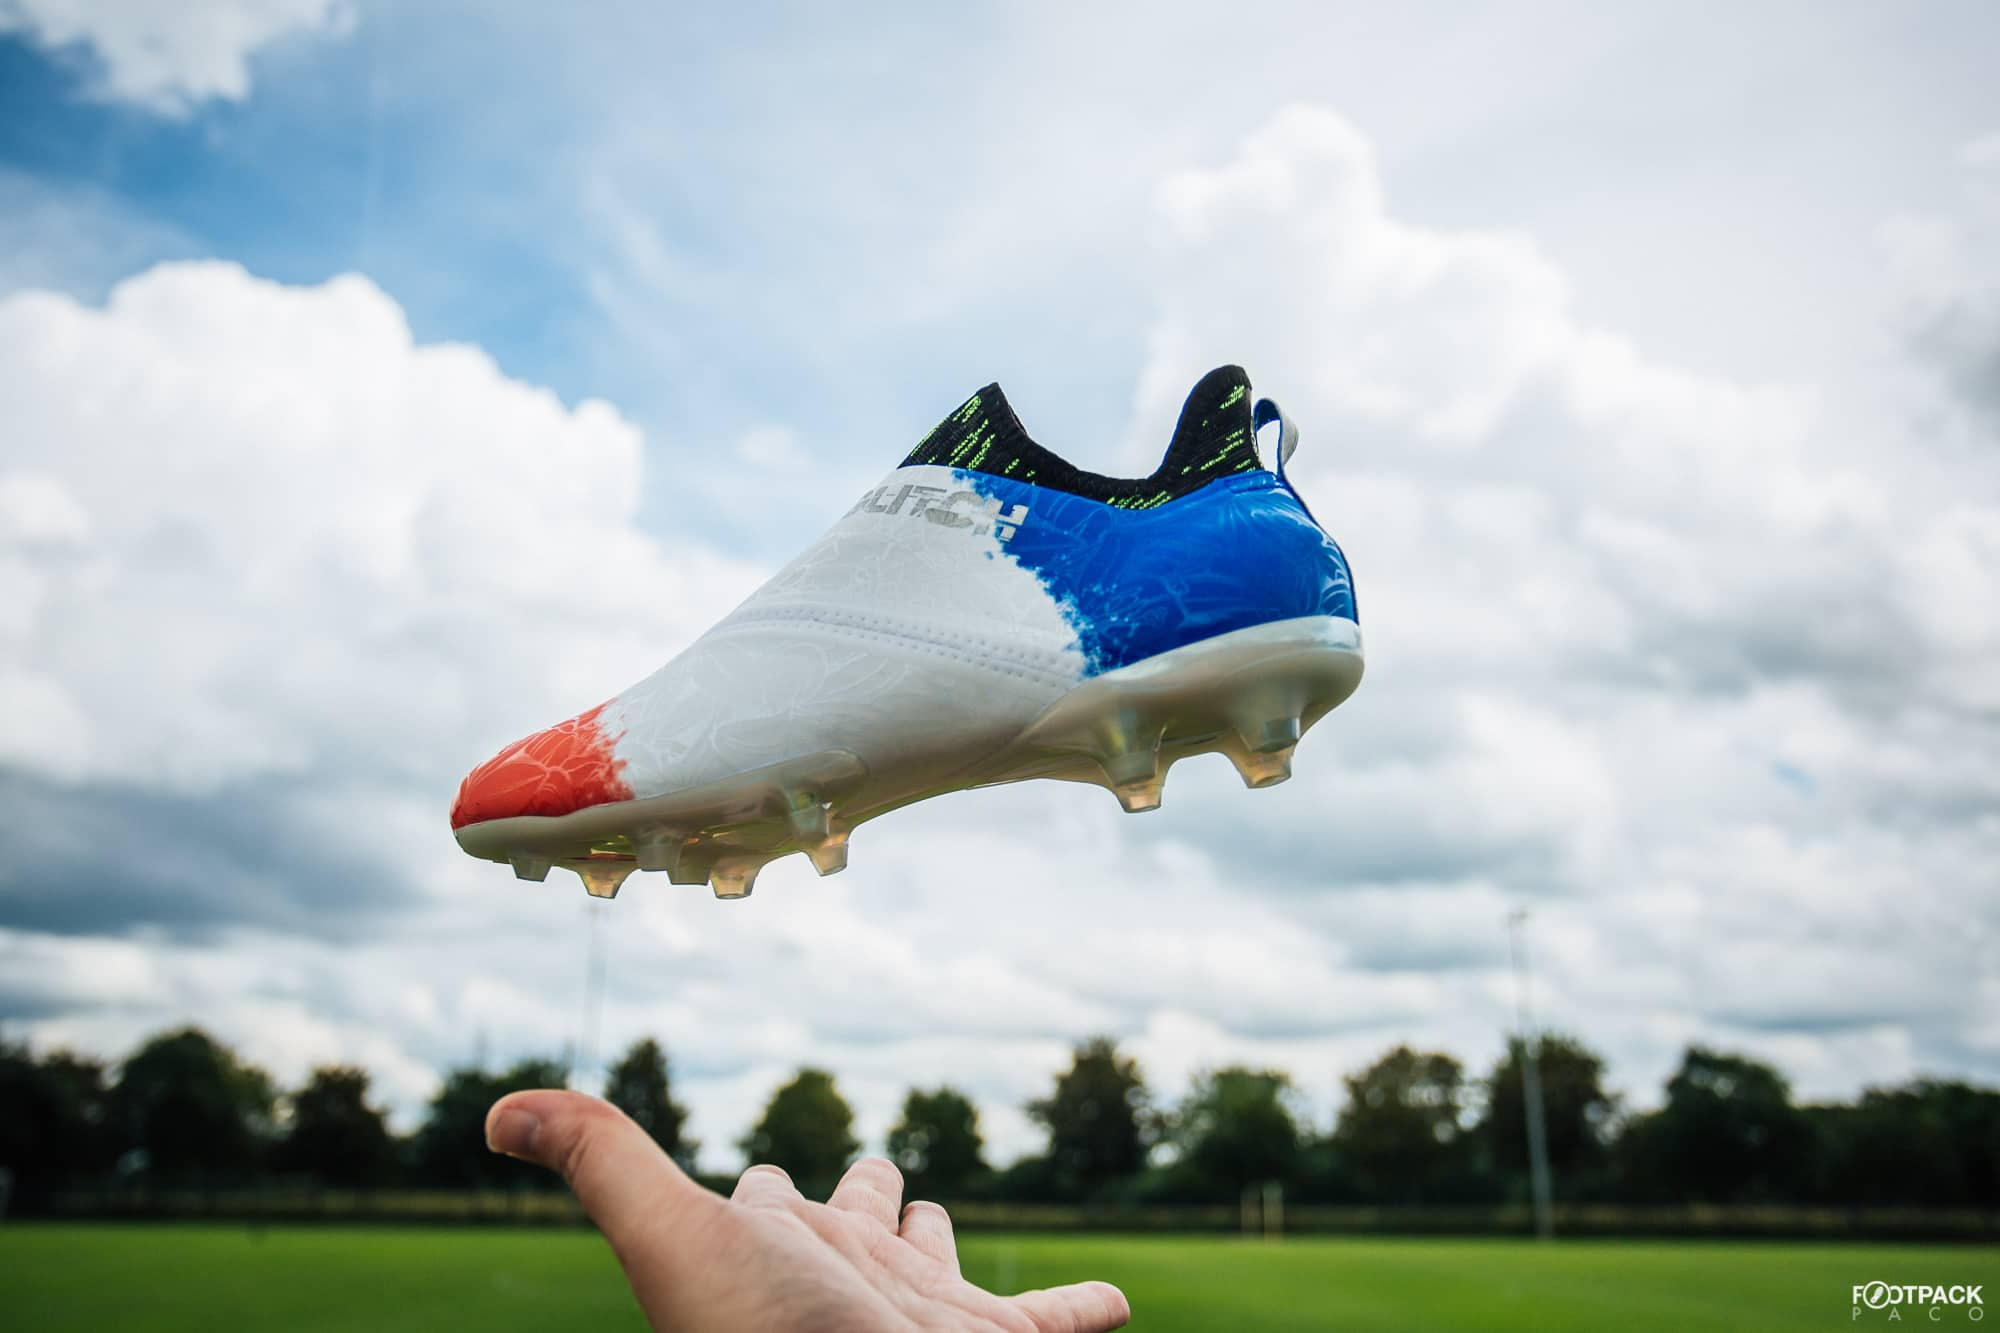 Chaussures-football-adidas-glitch-18-2-0-Worldskin-France-Coupe-Monde-Juin-2018-14